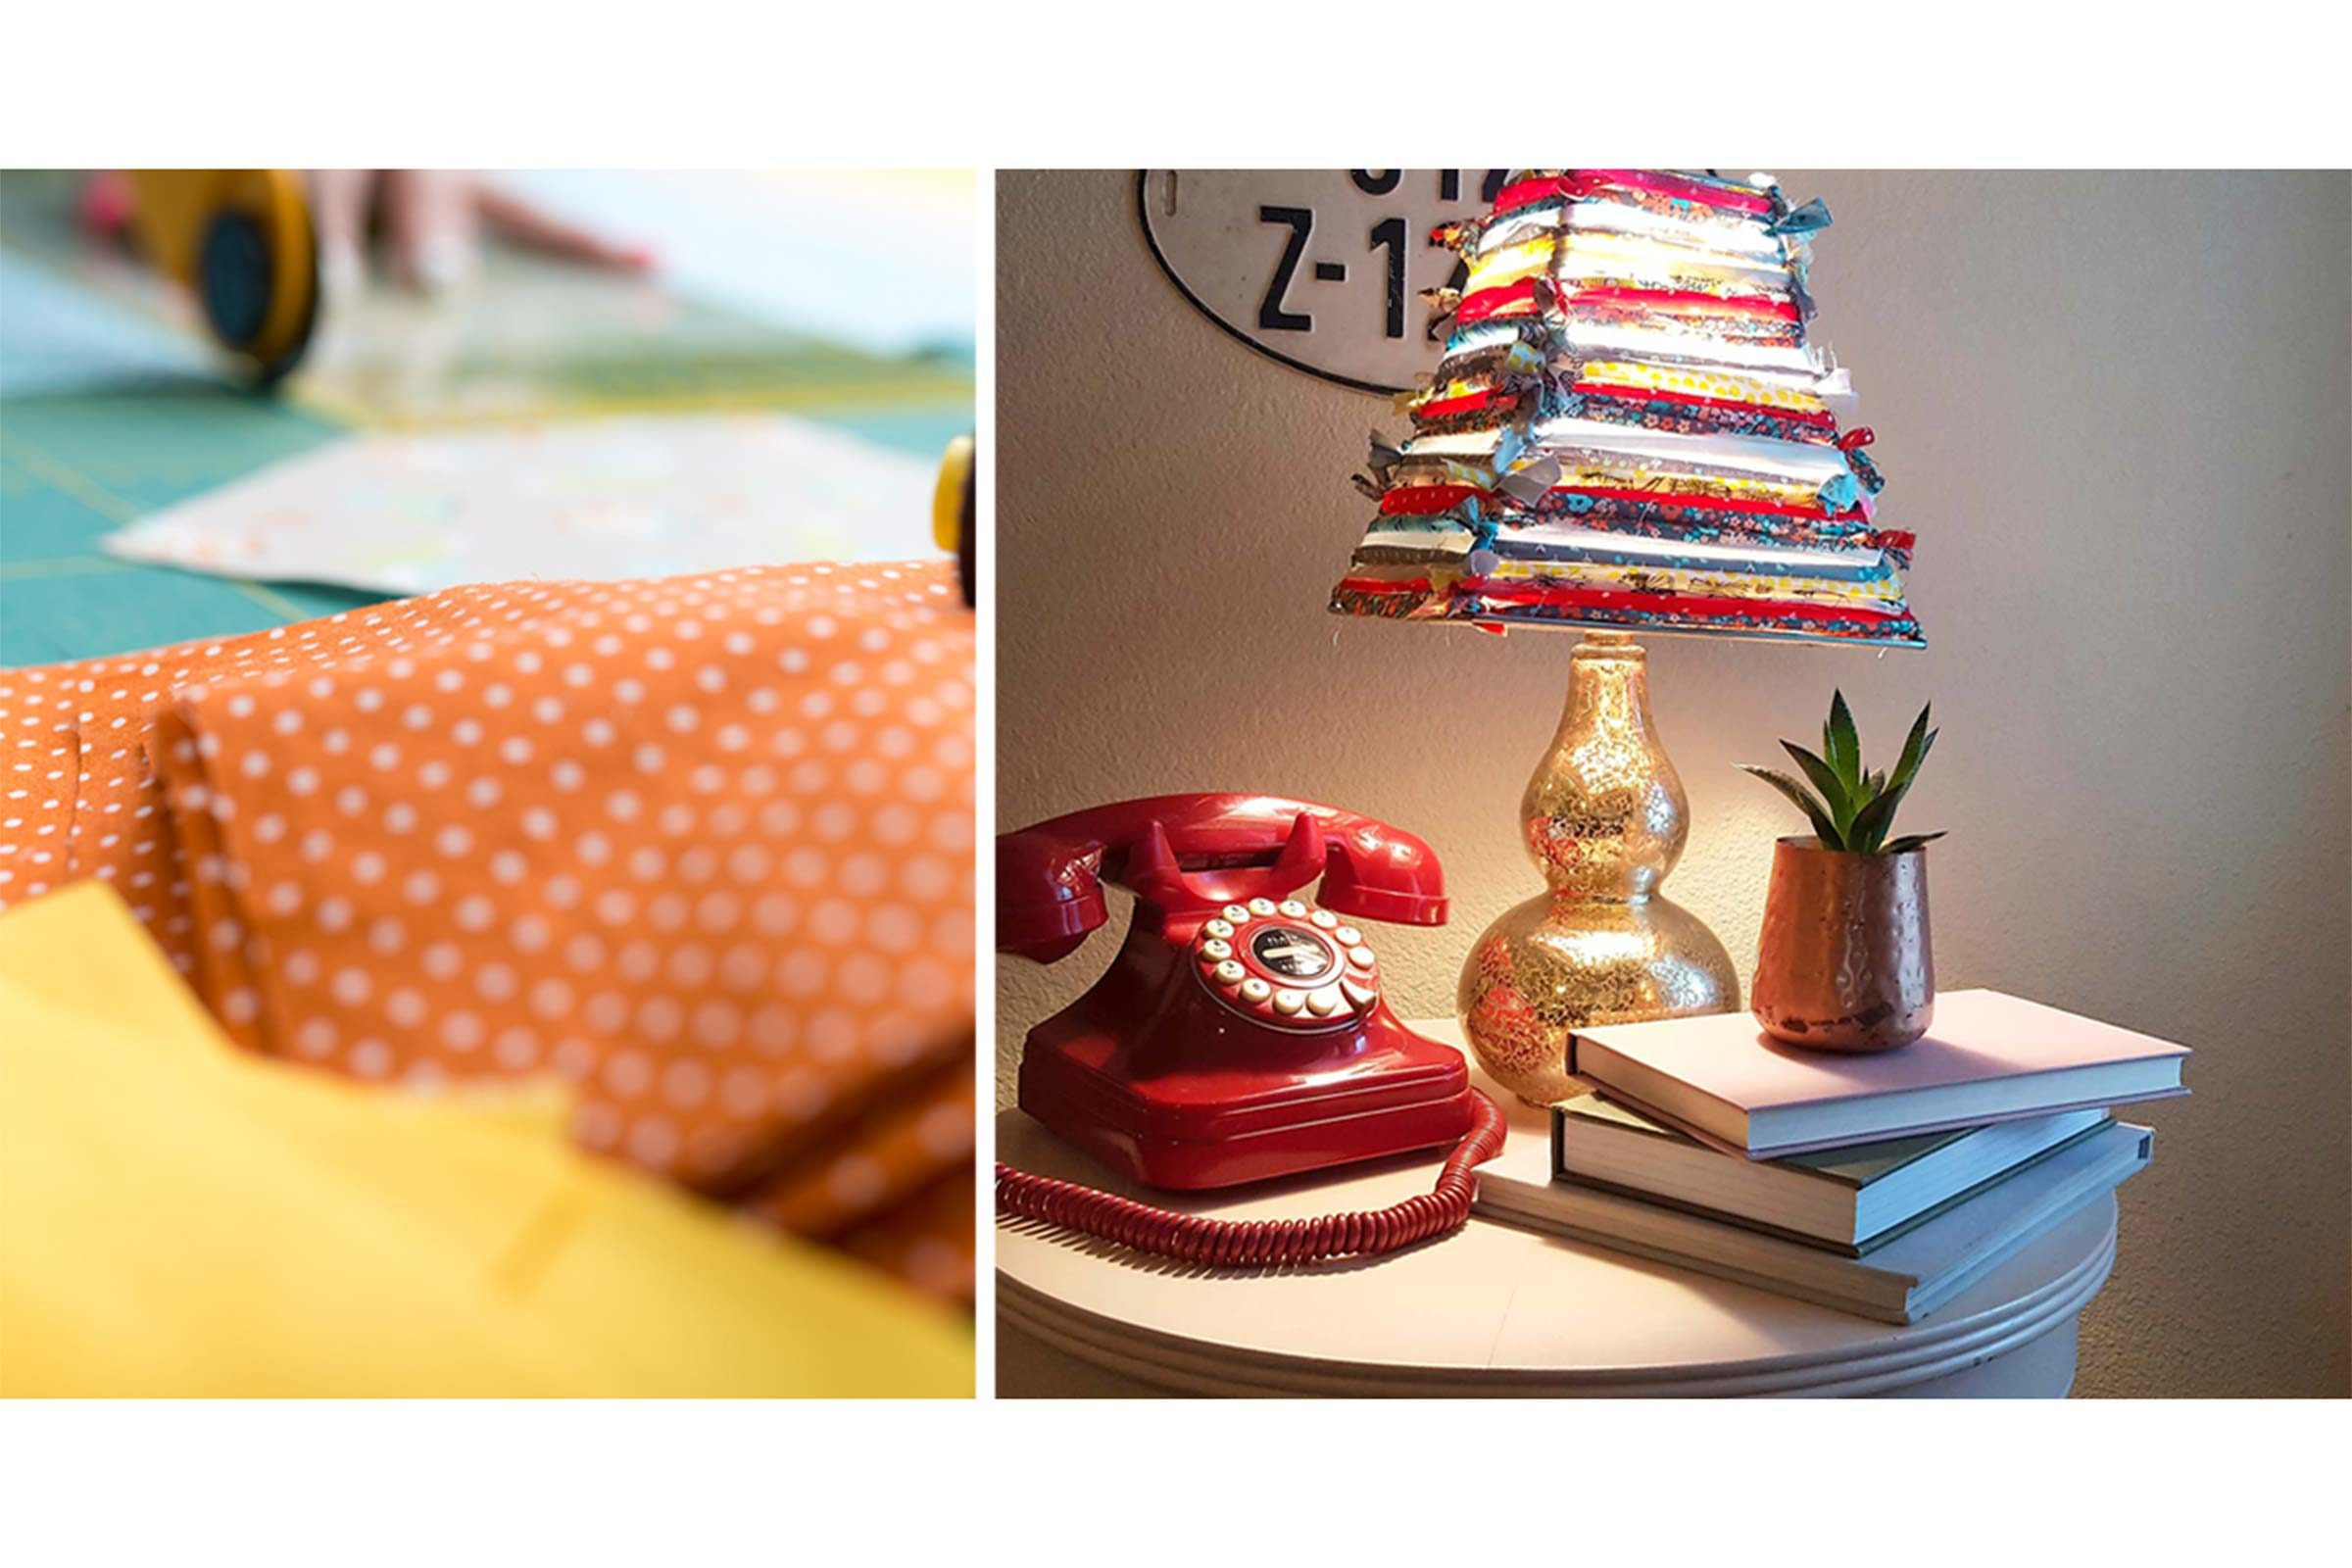 Turn Old Fabric Scraps into a Colorful Lampshade in 3 Easy Steps